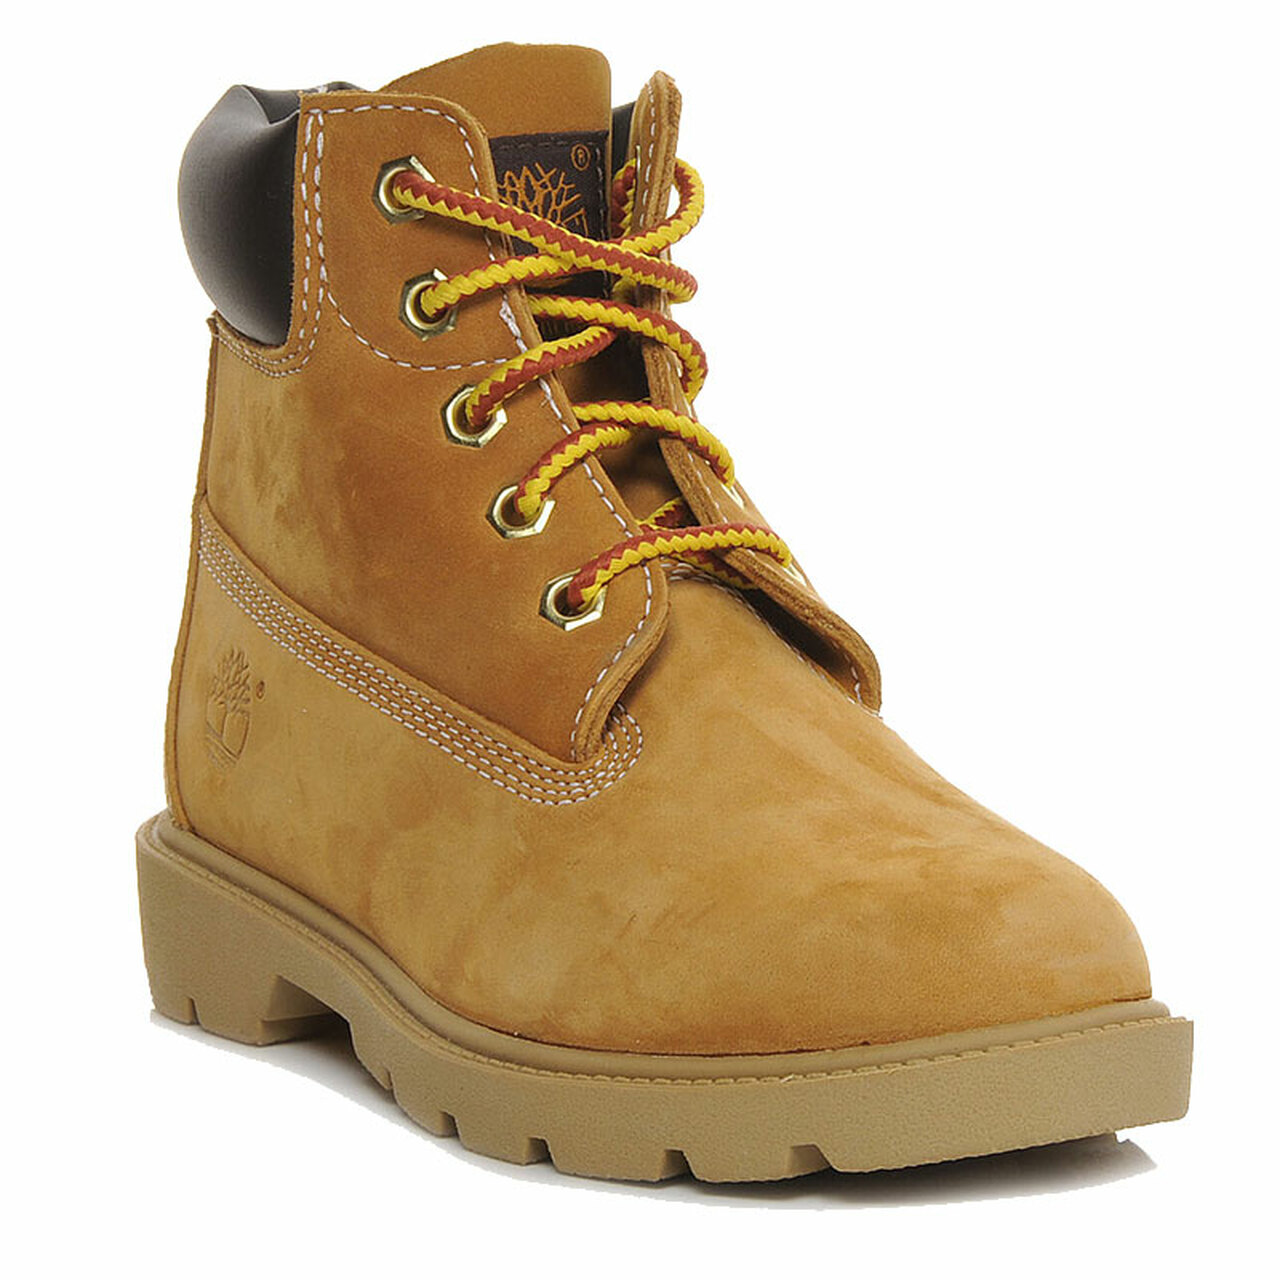 Descodificar Moretón Repegar  Timberland 10960 BIG KIDS' TIMS BOOTS Classic Gold Boots - Family Footwear  Center